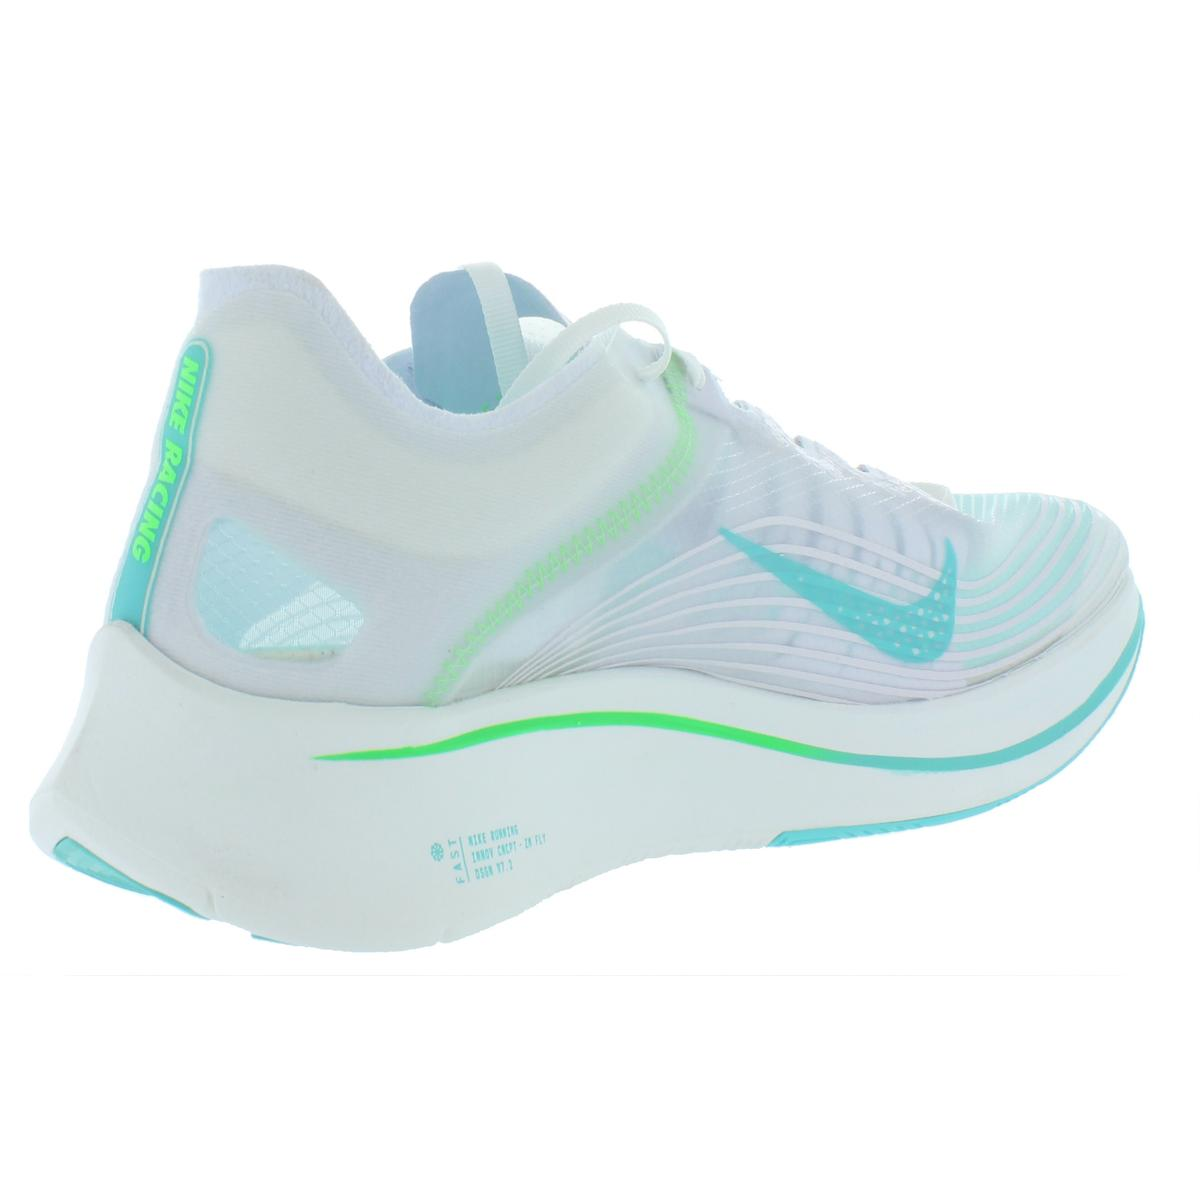 4572bf043879d Nike Zoom Fly SP Running Shoes London Rage Green Aj9282 103 for sale ...